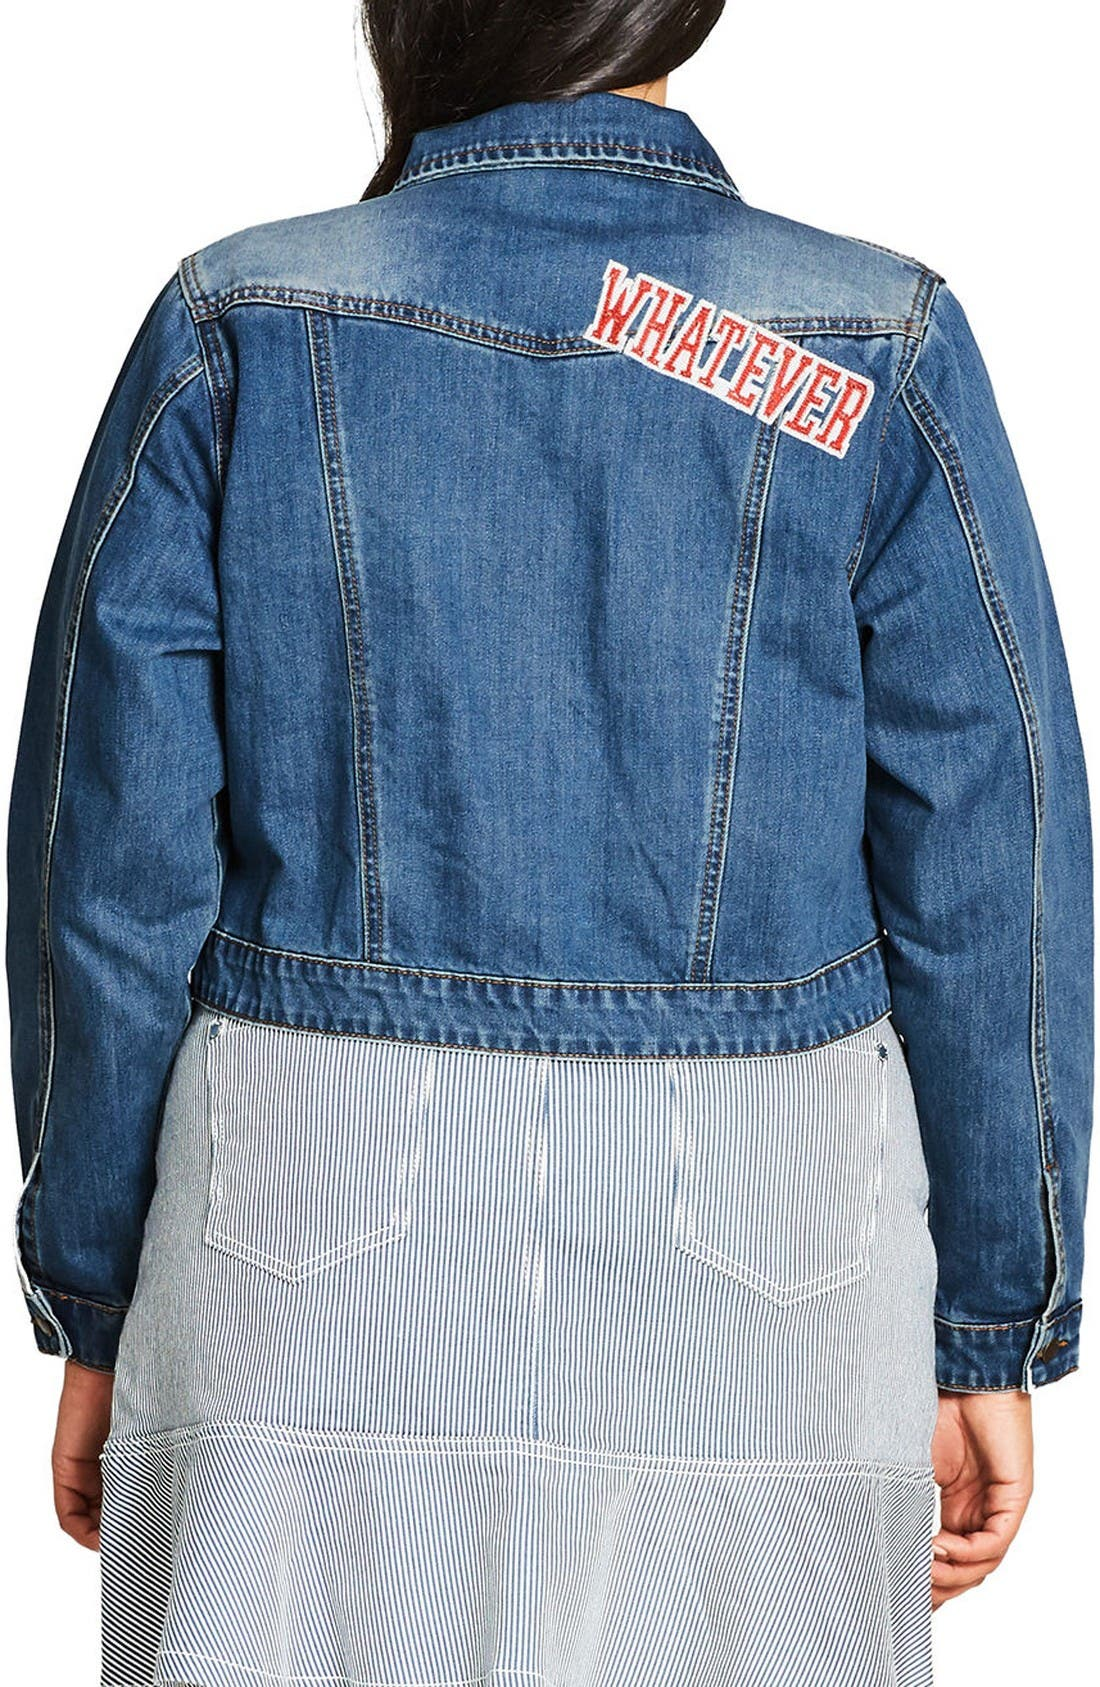 Alternate Image 2  - City Chic '80s Patch Denim Jacket (Plus Size)